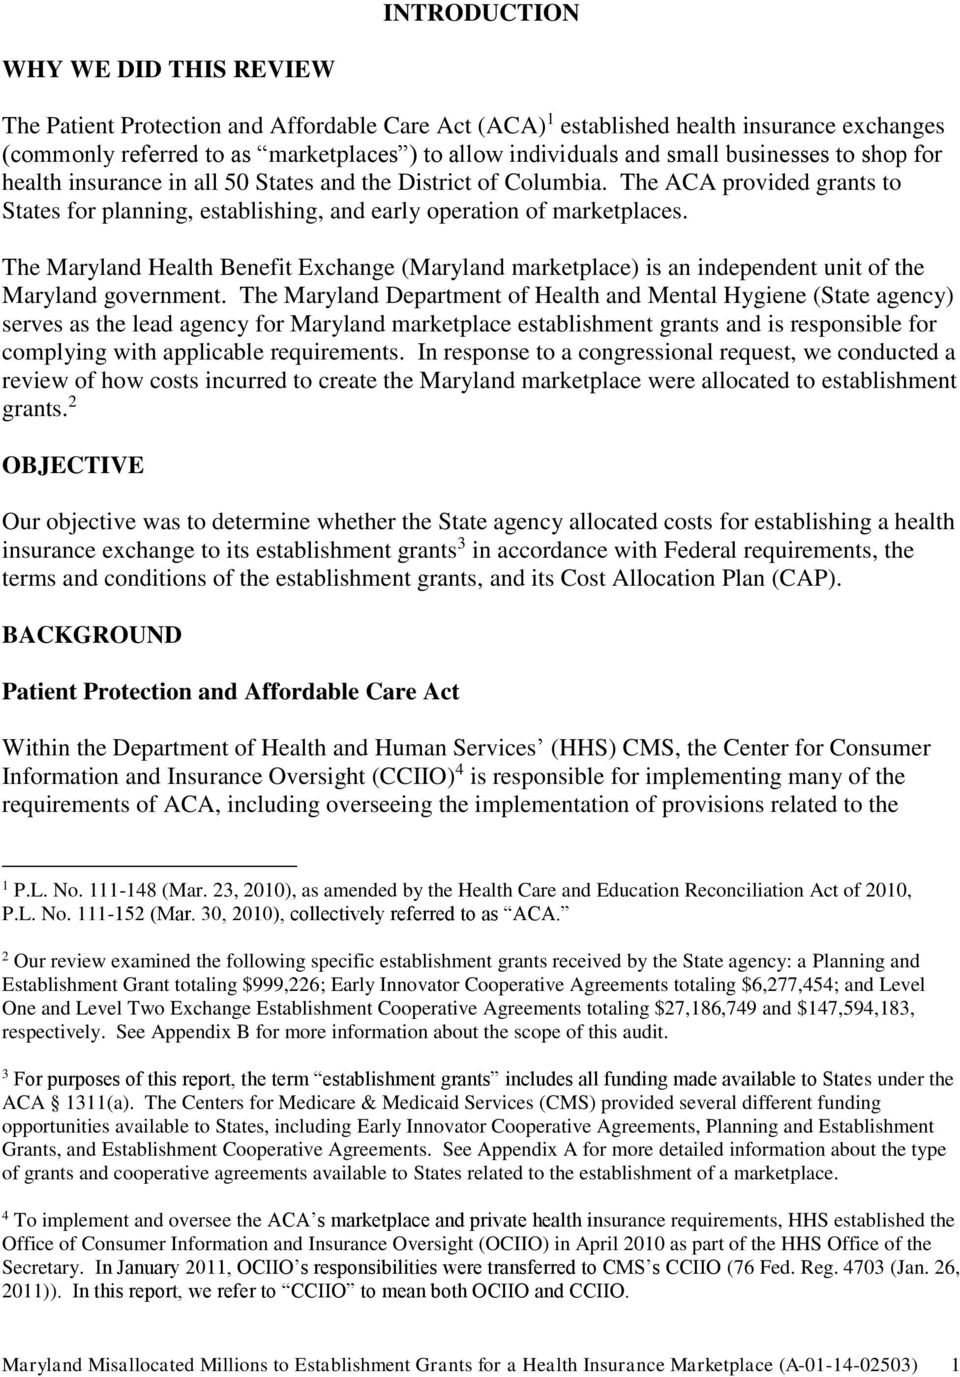 The Maryland Health Benefit Exchange (Maryland marketplace) is an independent unit of the Maryland government.